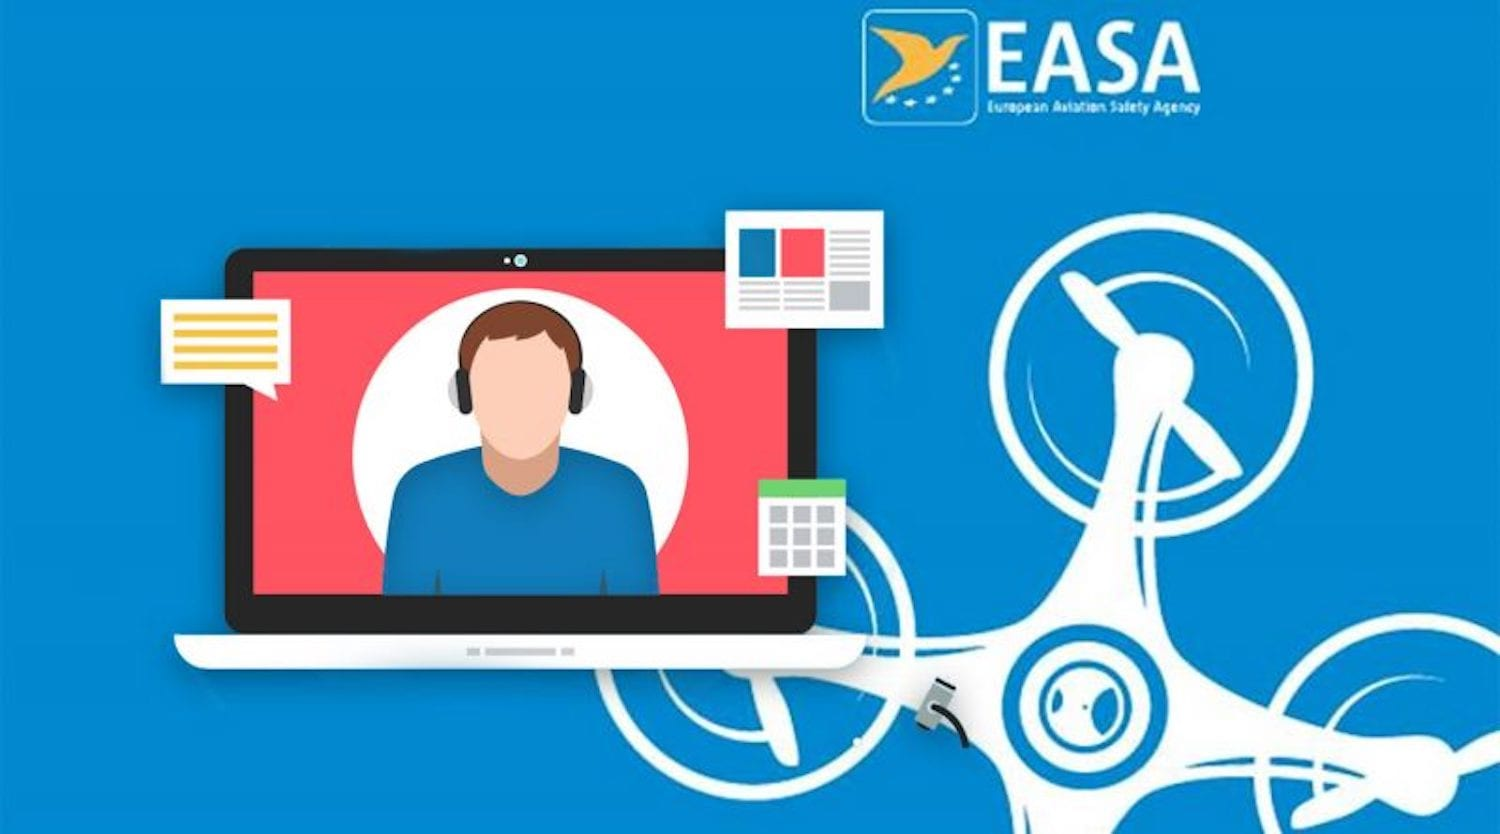 EASA organizes two webinars about EU drone regulations